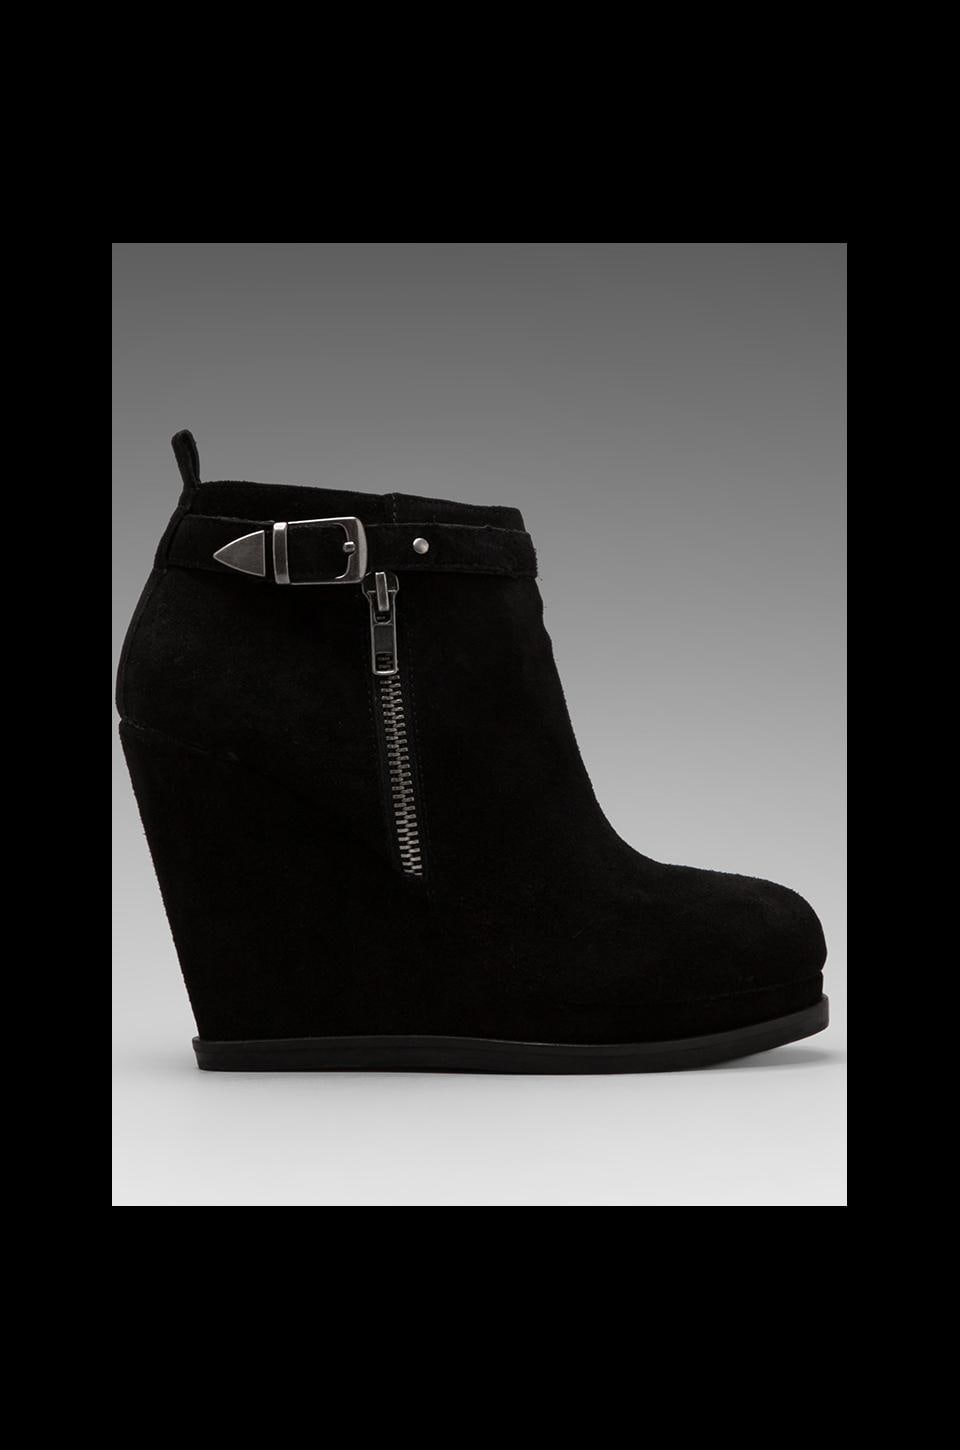 Dolce Vita Peri Wedge Bootie in Black